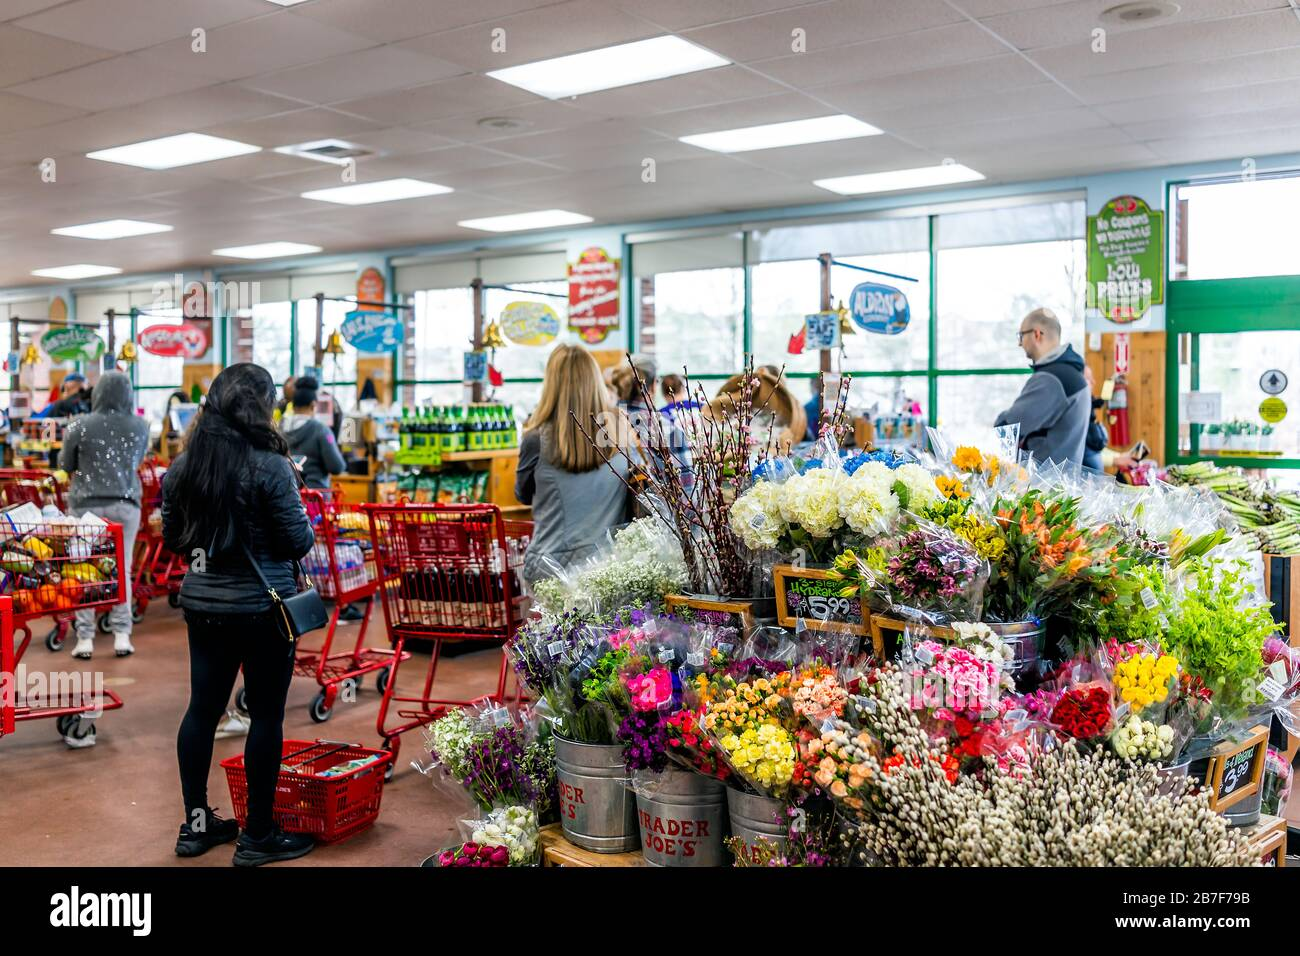 Reston, USA - March 13, 2020: Long lines in Trader Joe's store with people by shopping cart buying grocery products, paying at cashier registers in pr Stock Photo